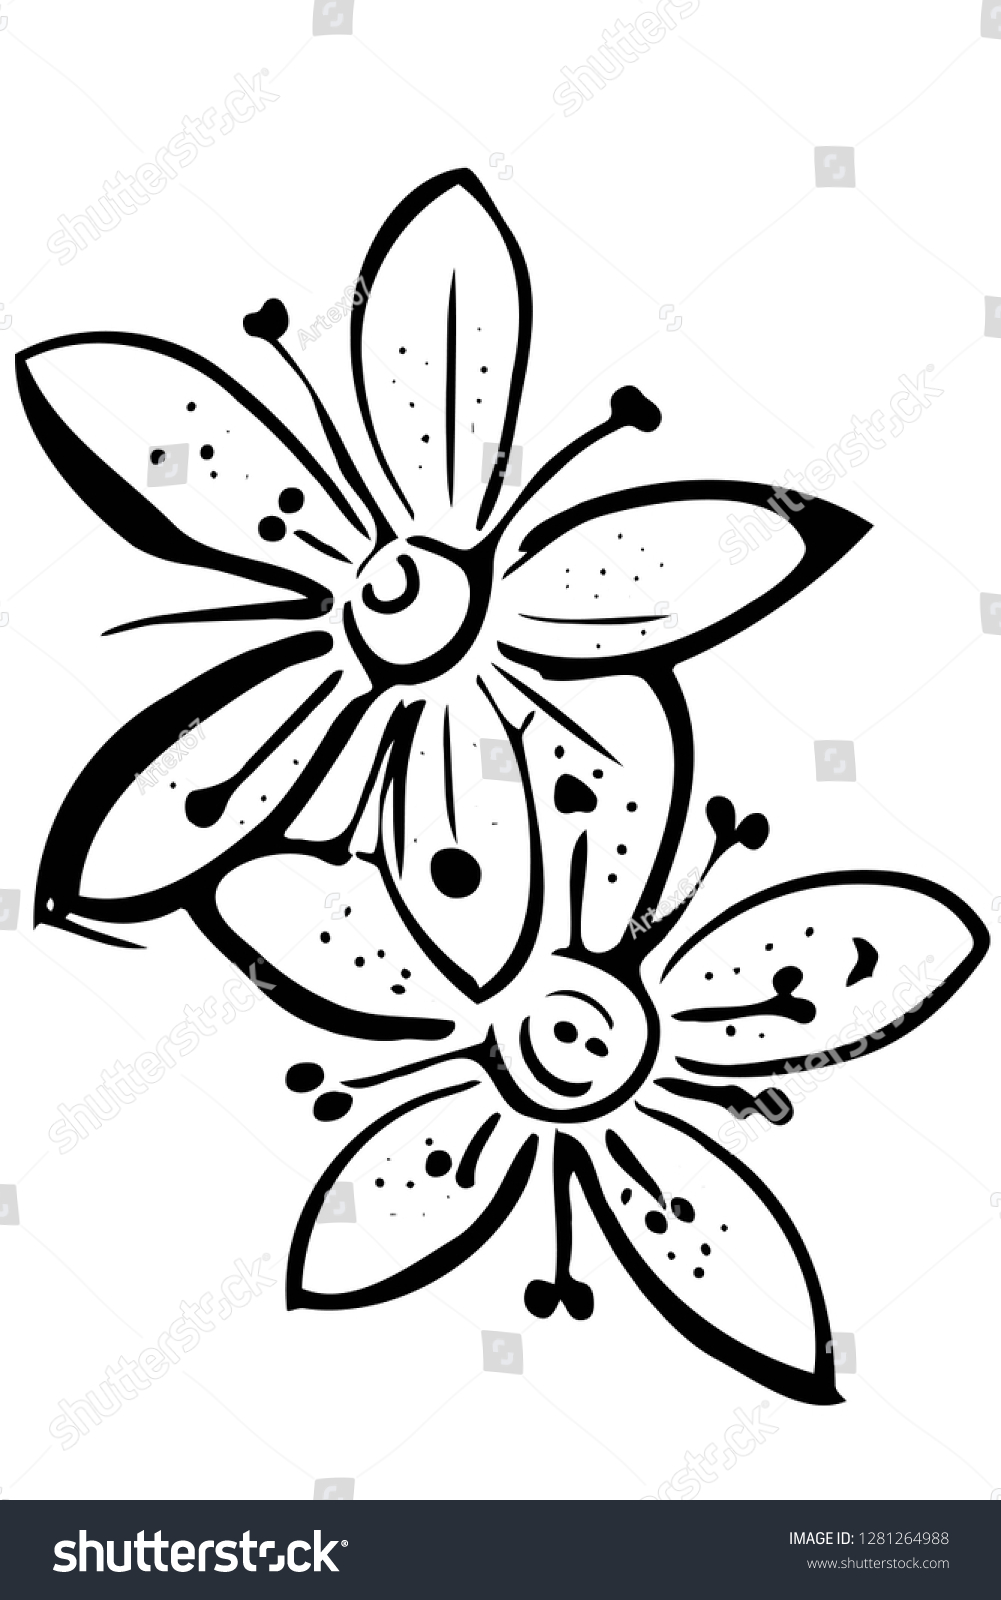 Arte Floral Vetor Black White Vector Sketch Blooming Beautiful Stock Vector Royalty